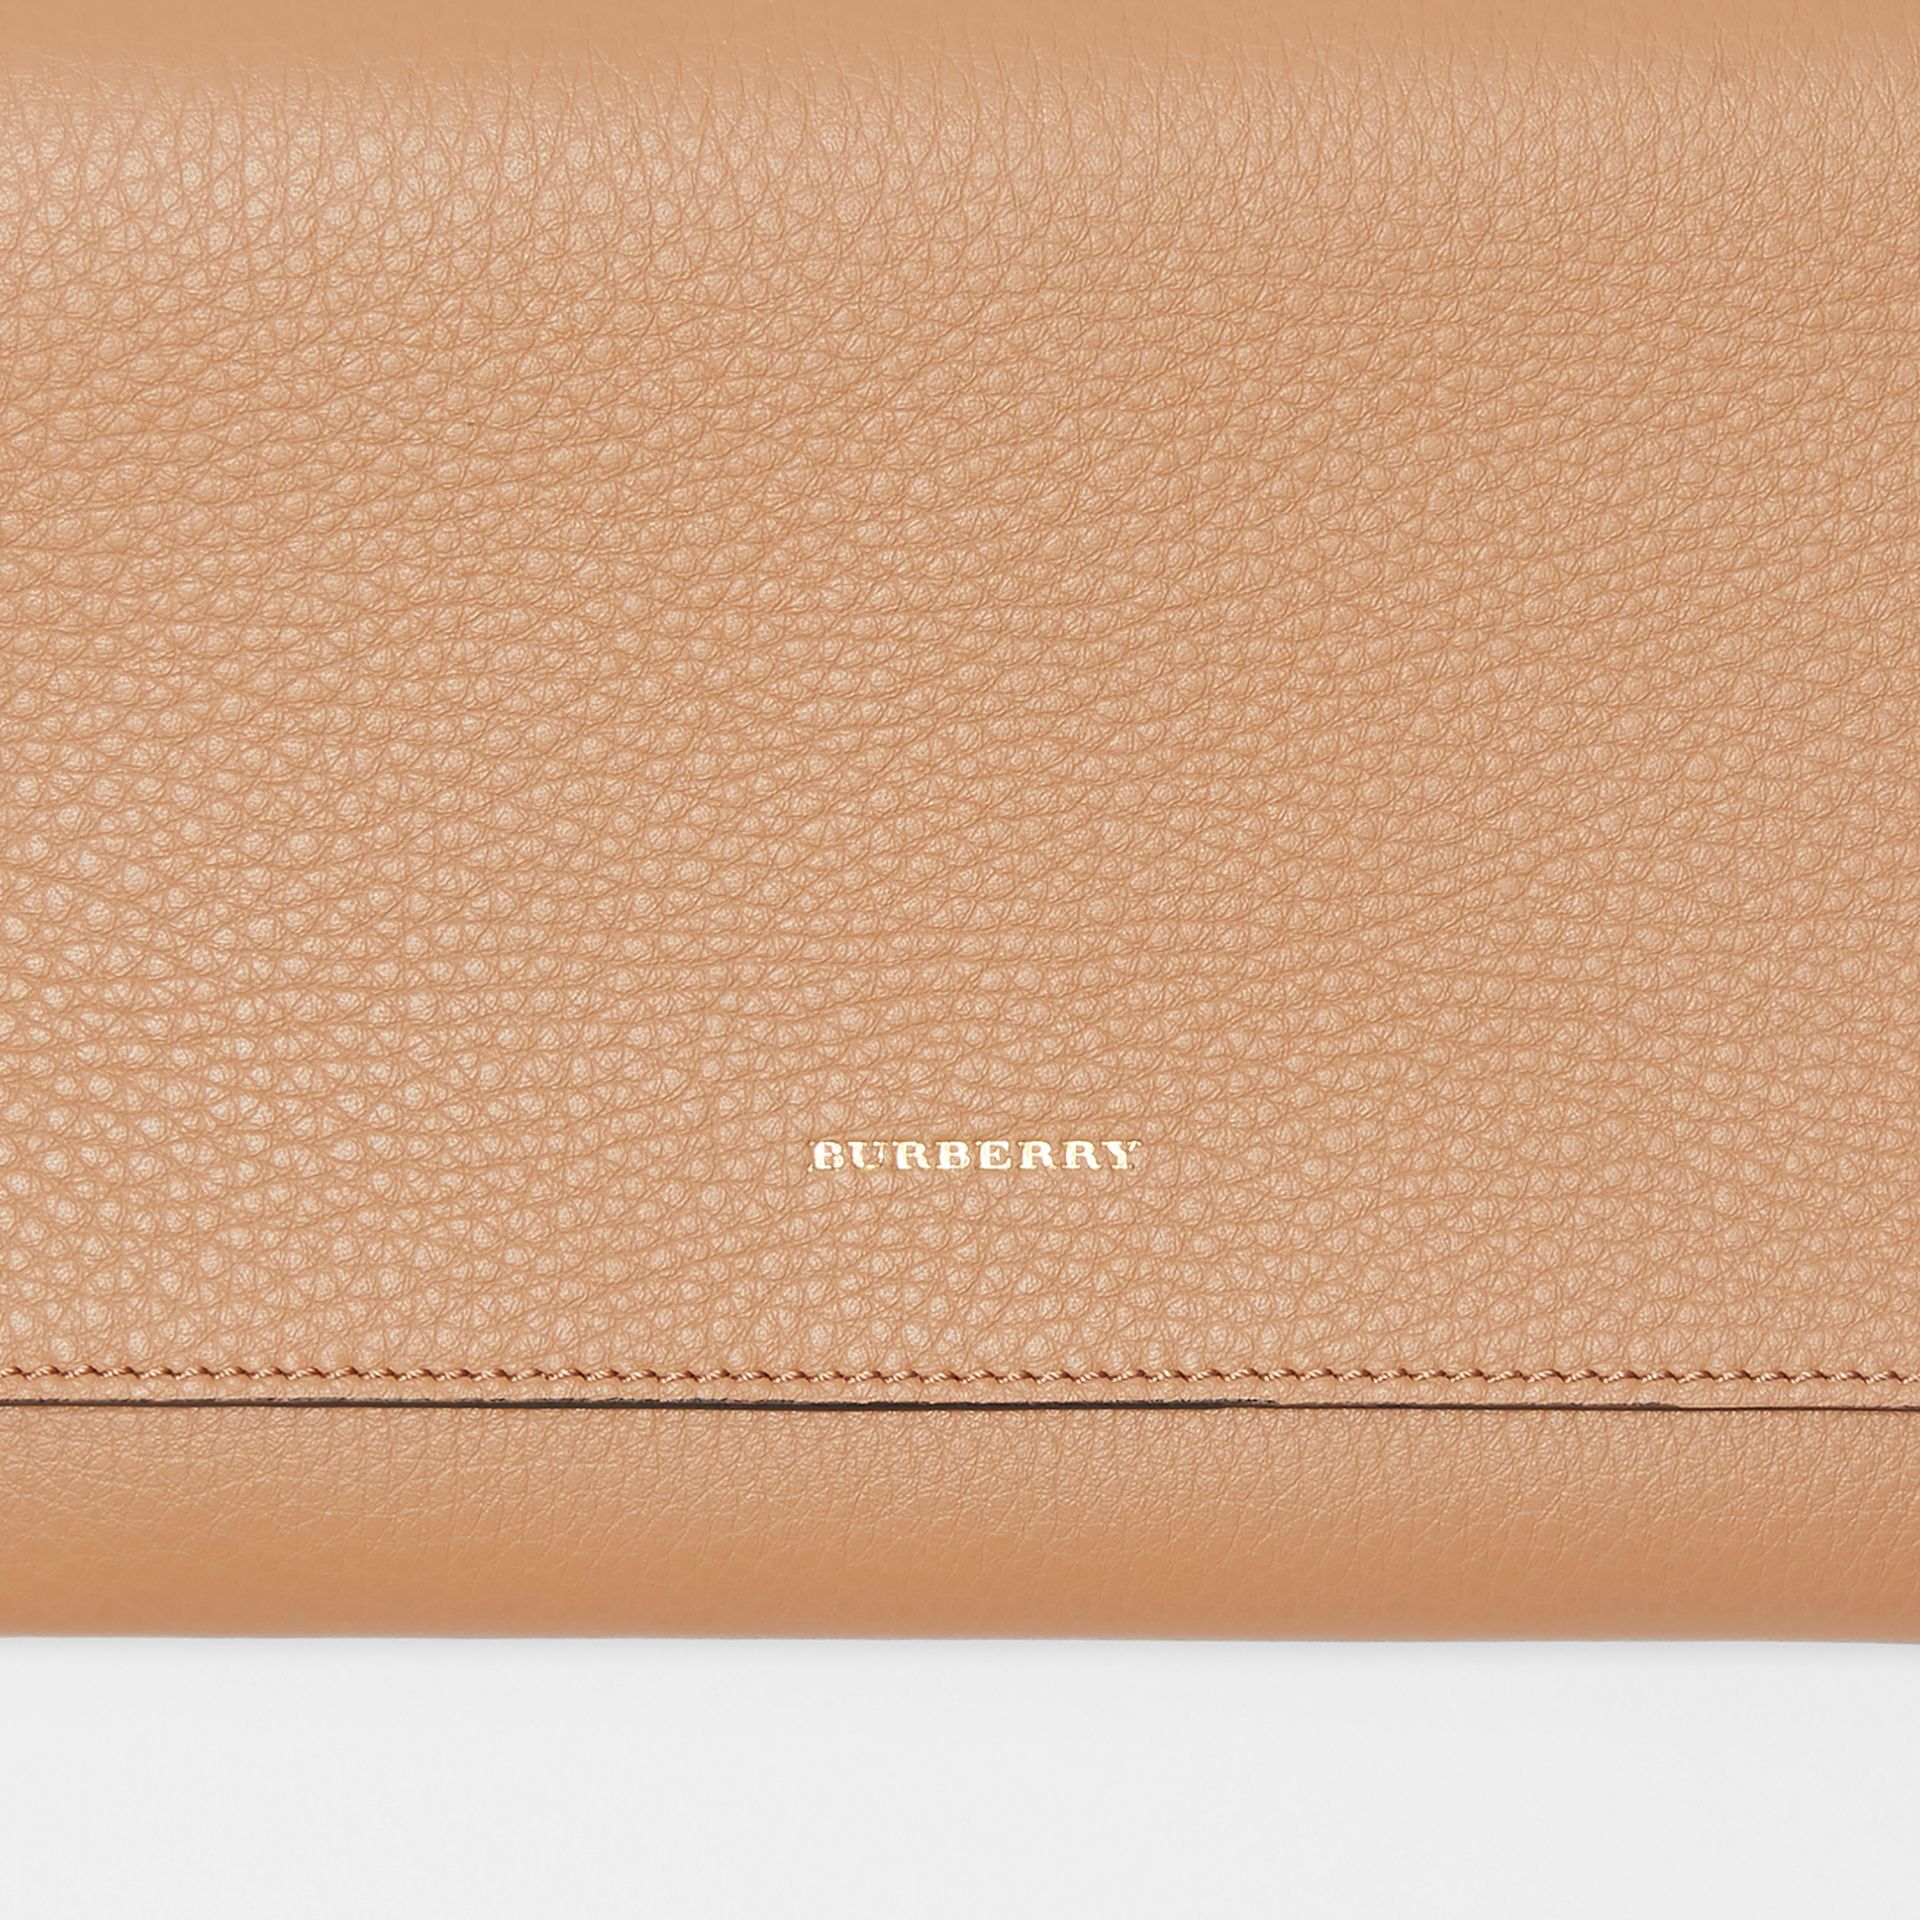 Two-tone Leather Wristlet Clutch in Light Camel - Women | Burberry - gallery image 1